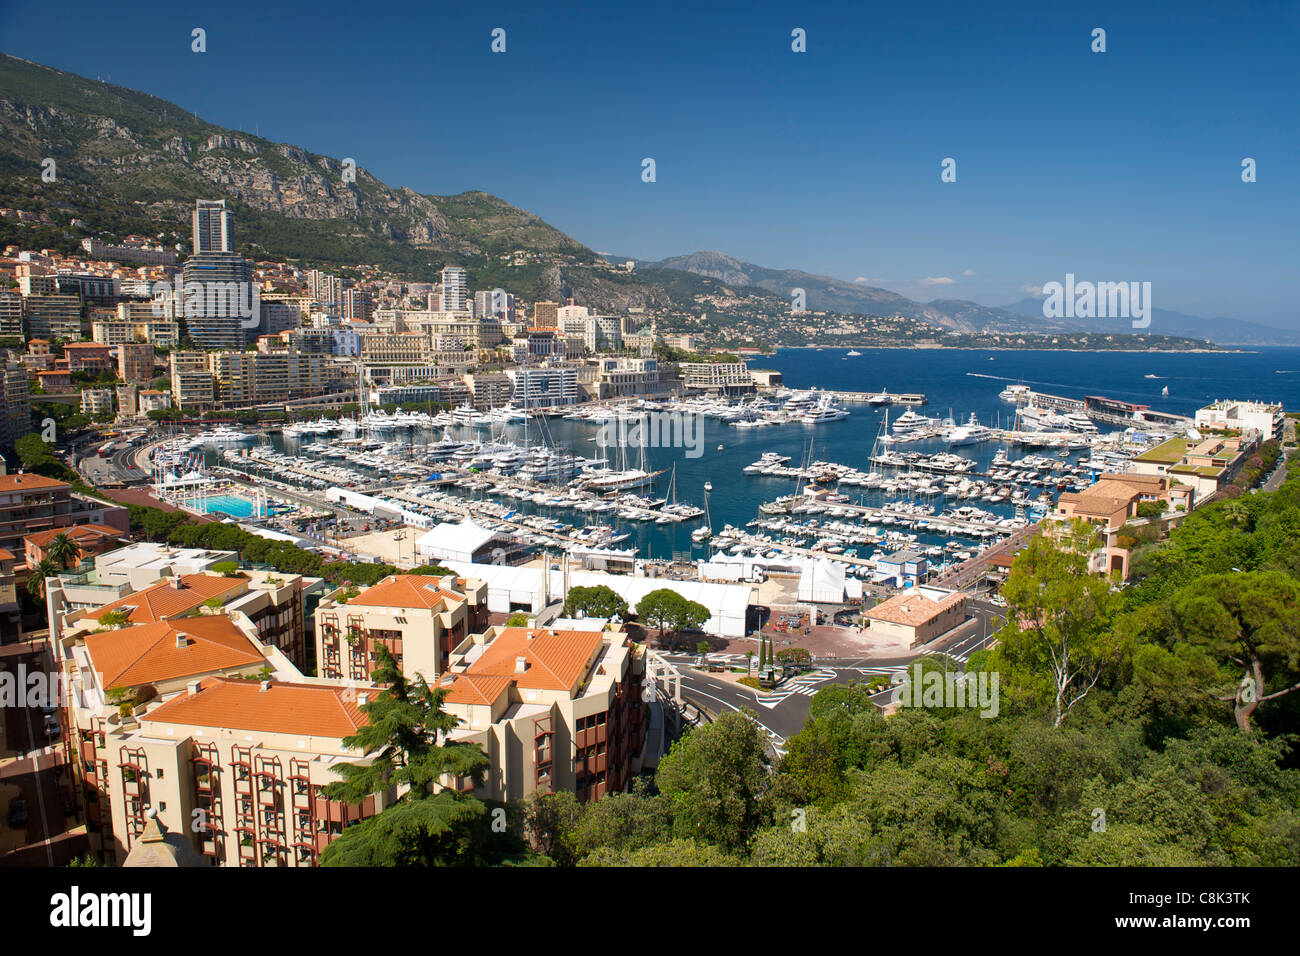 View of Port Hercule and the city and Principality of Monaco on the French Riviera along the Mediterranean coast. - Stock Image